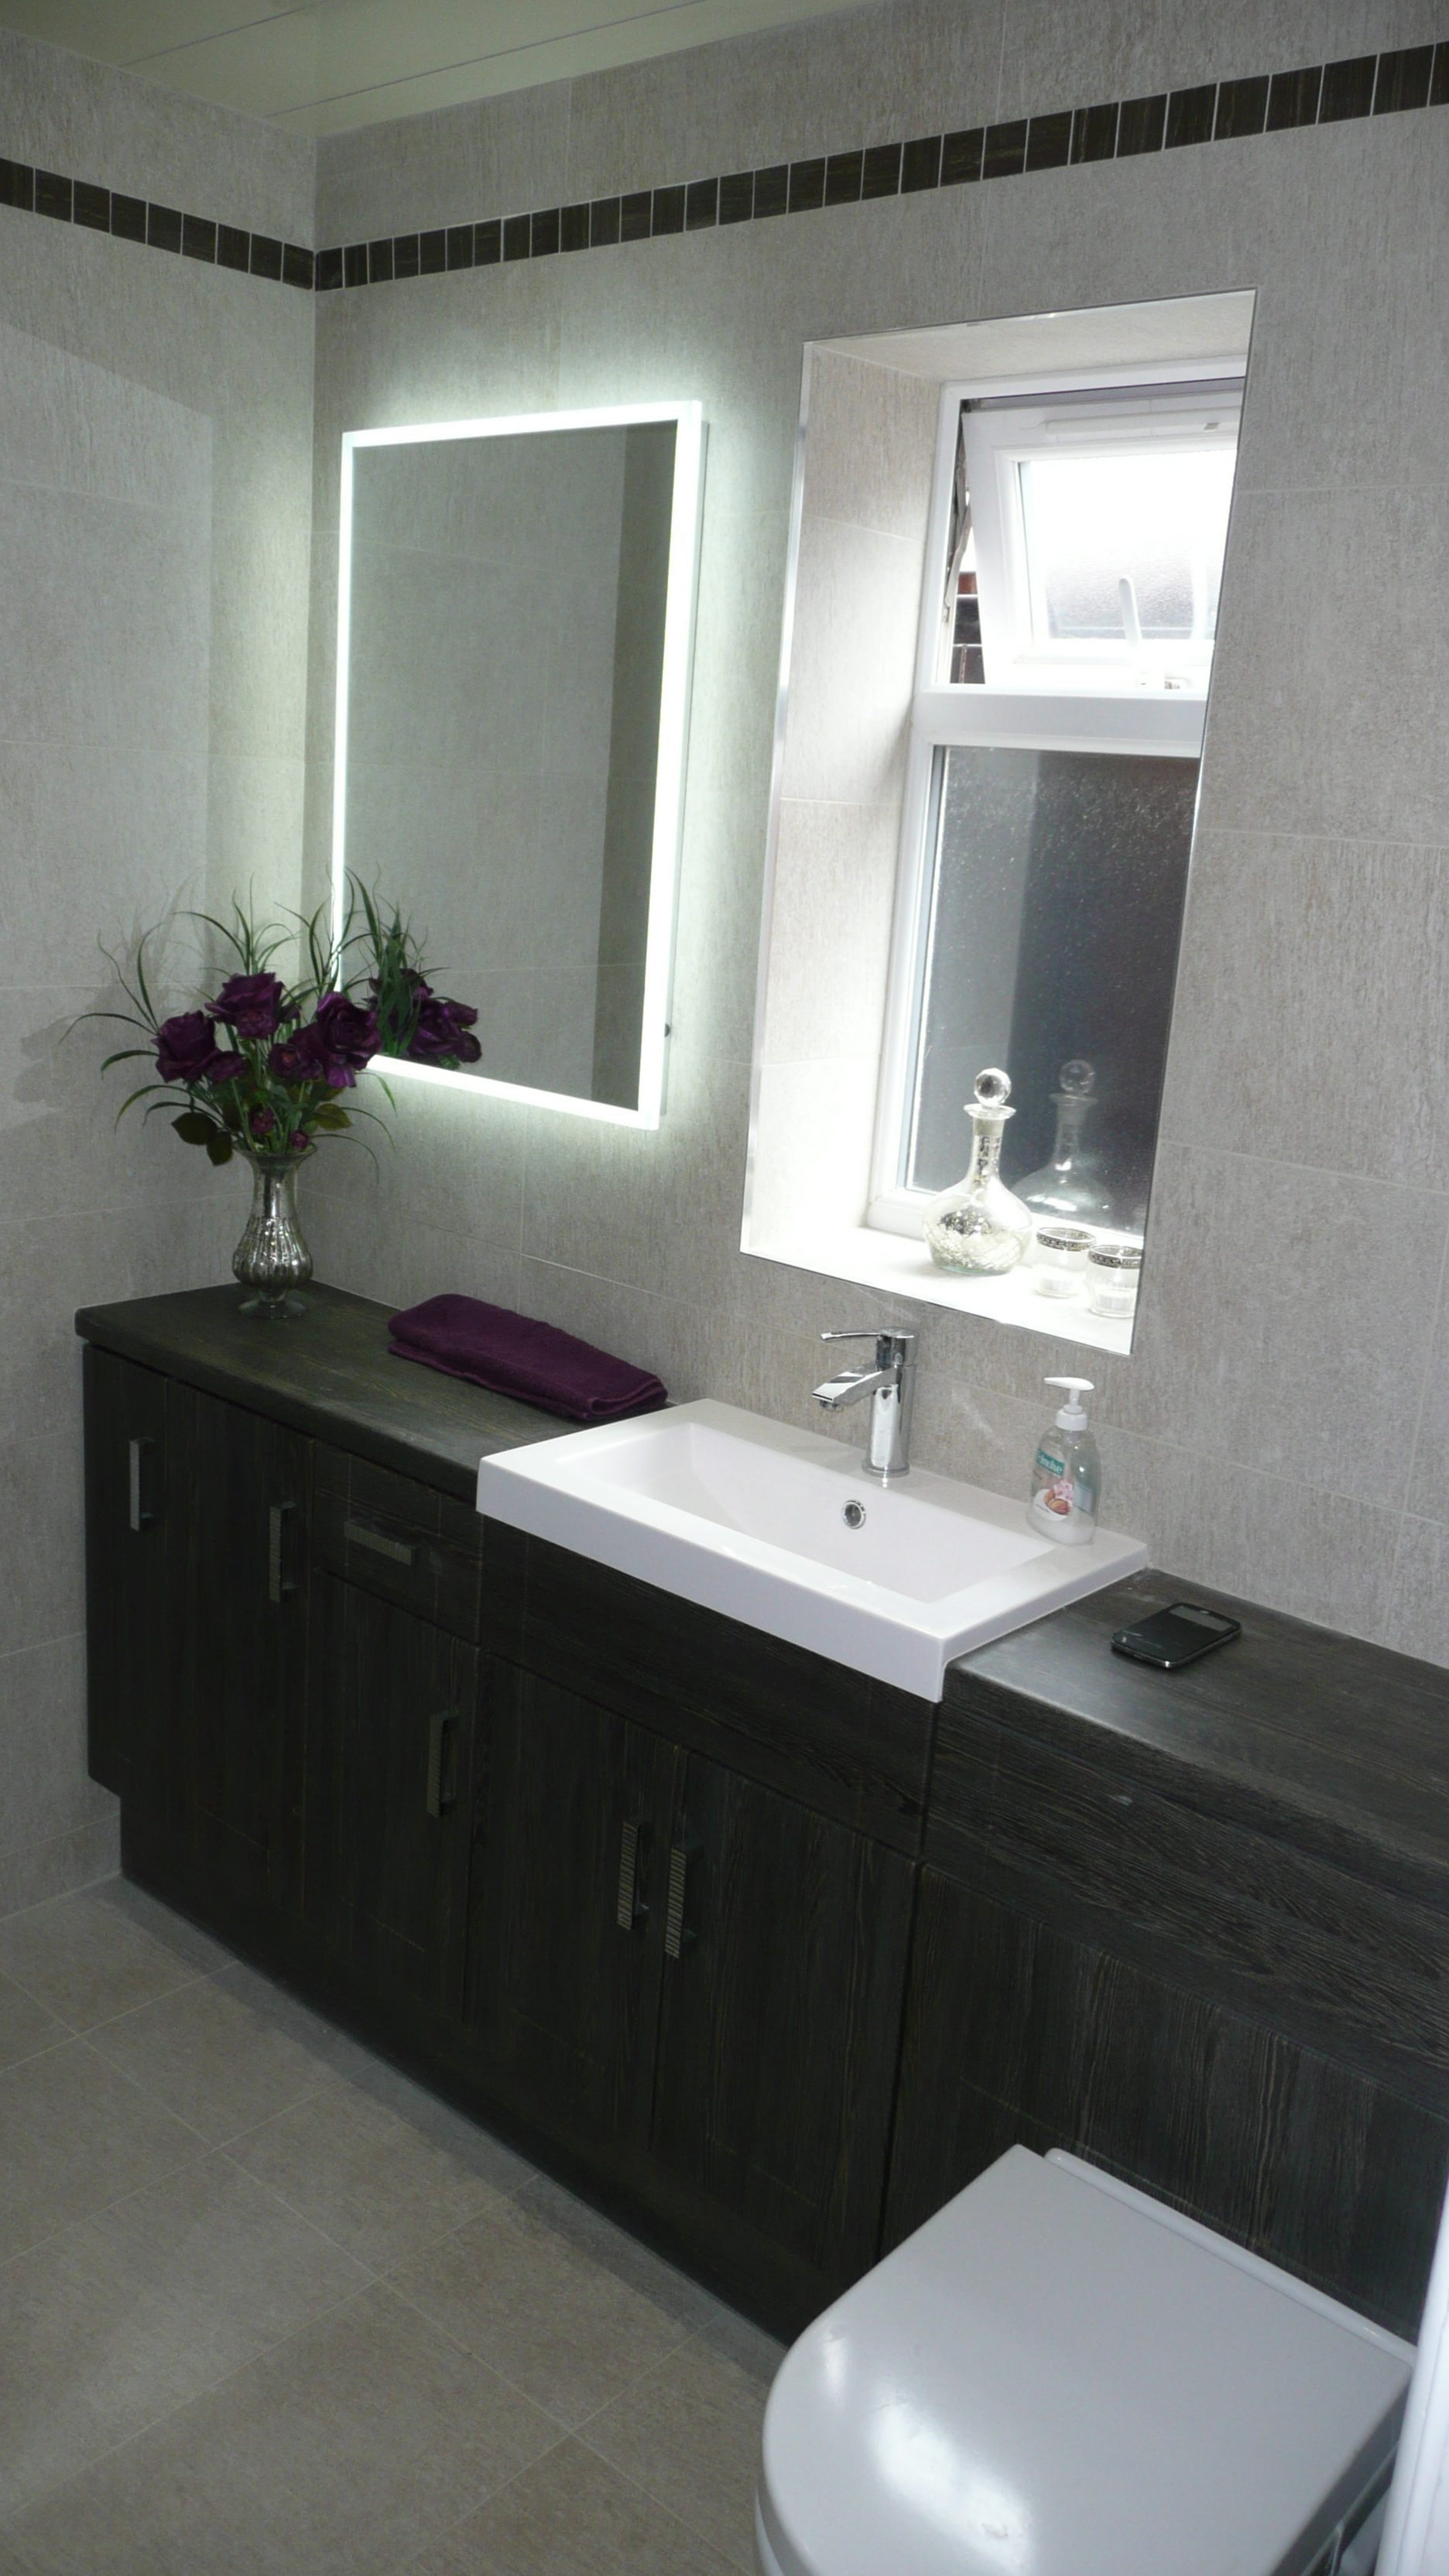 Making bathrooms beautiful hib Bathroom design jobs london